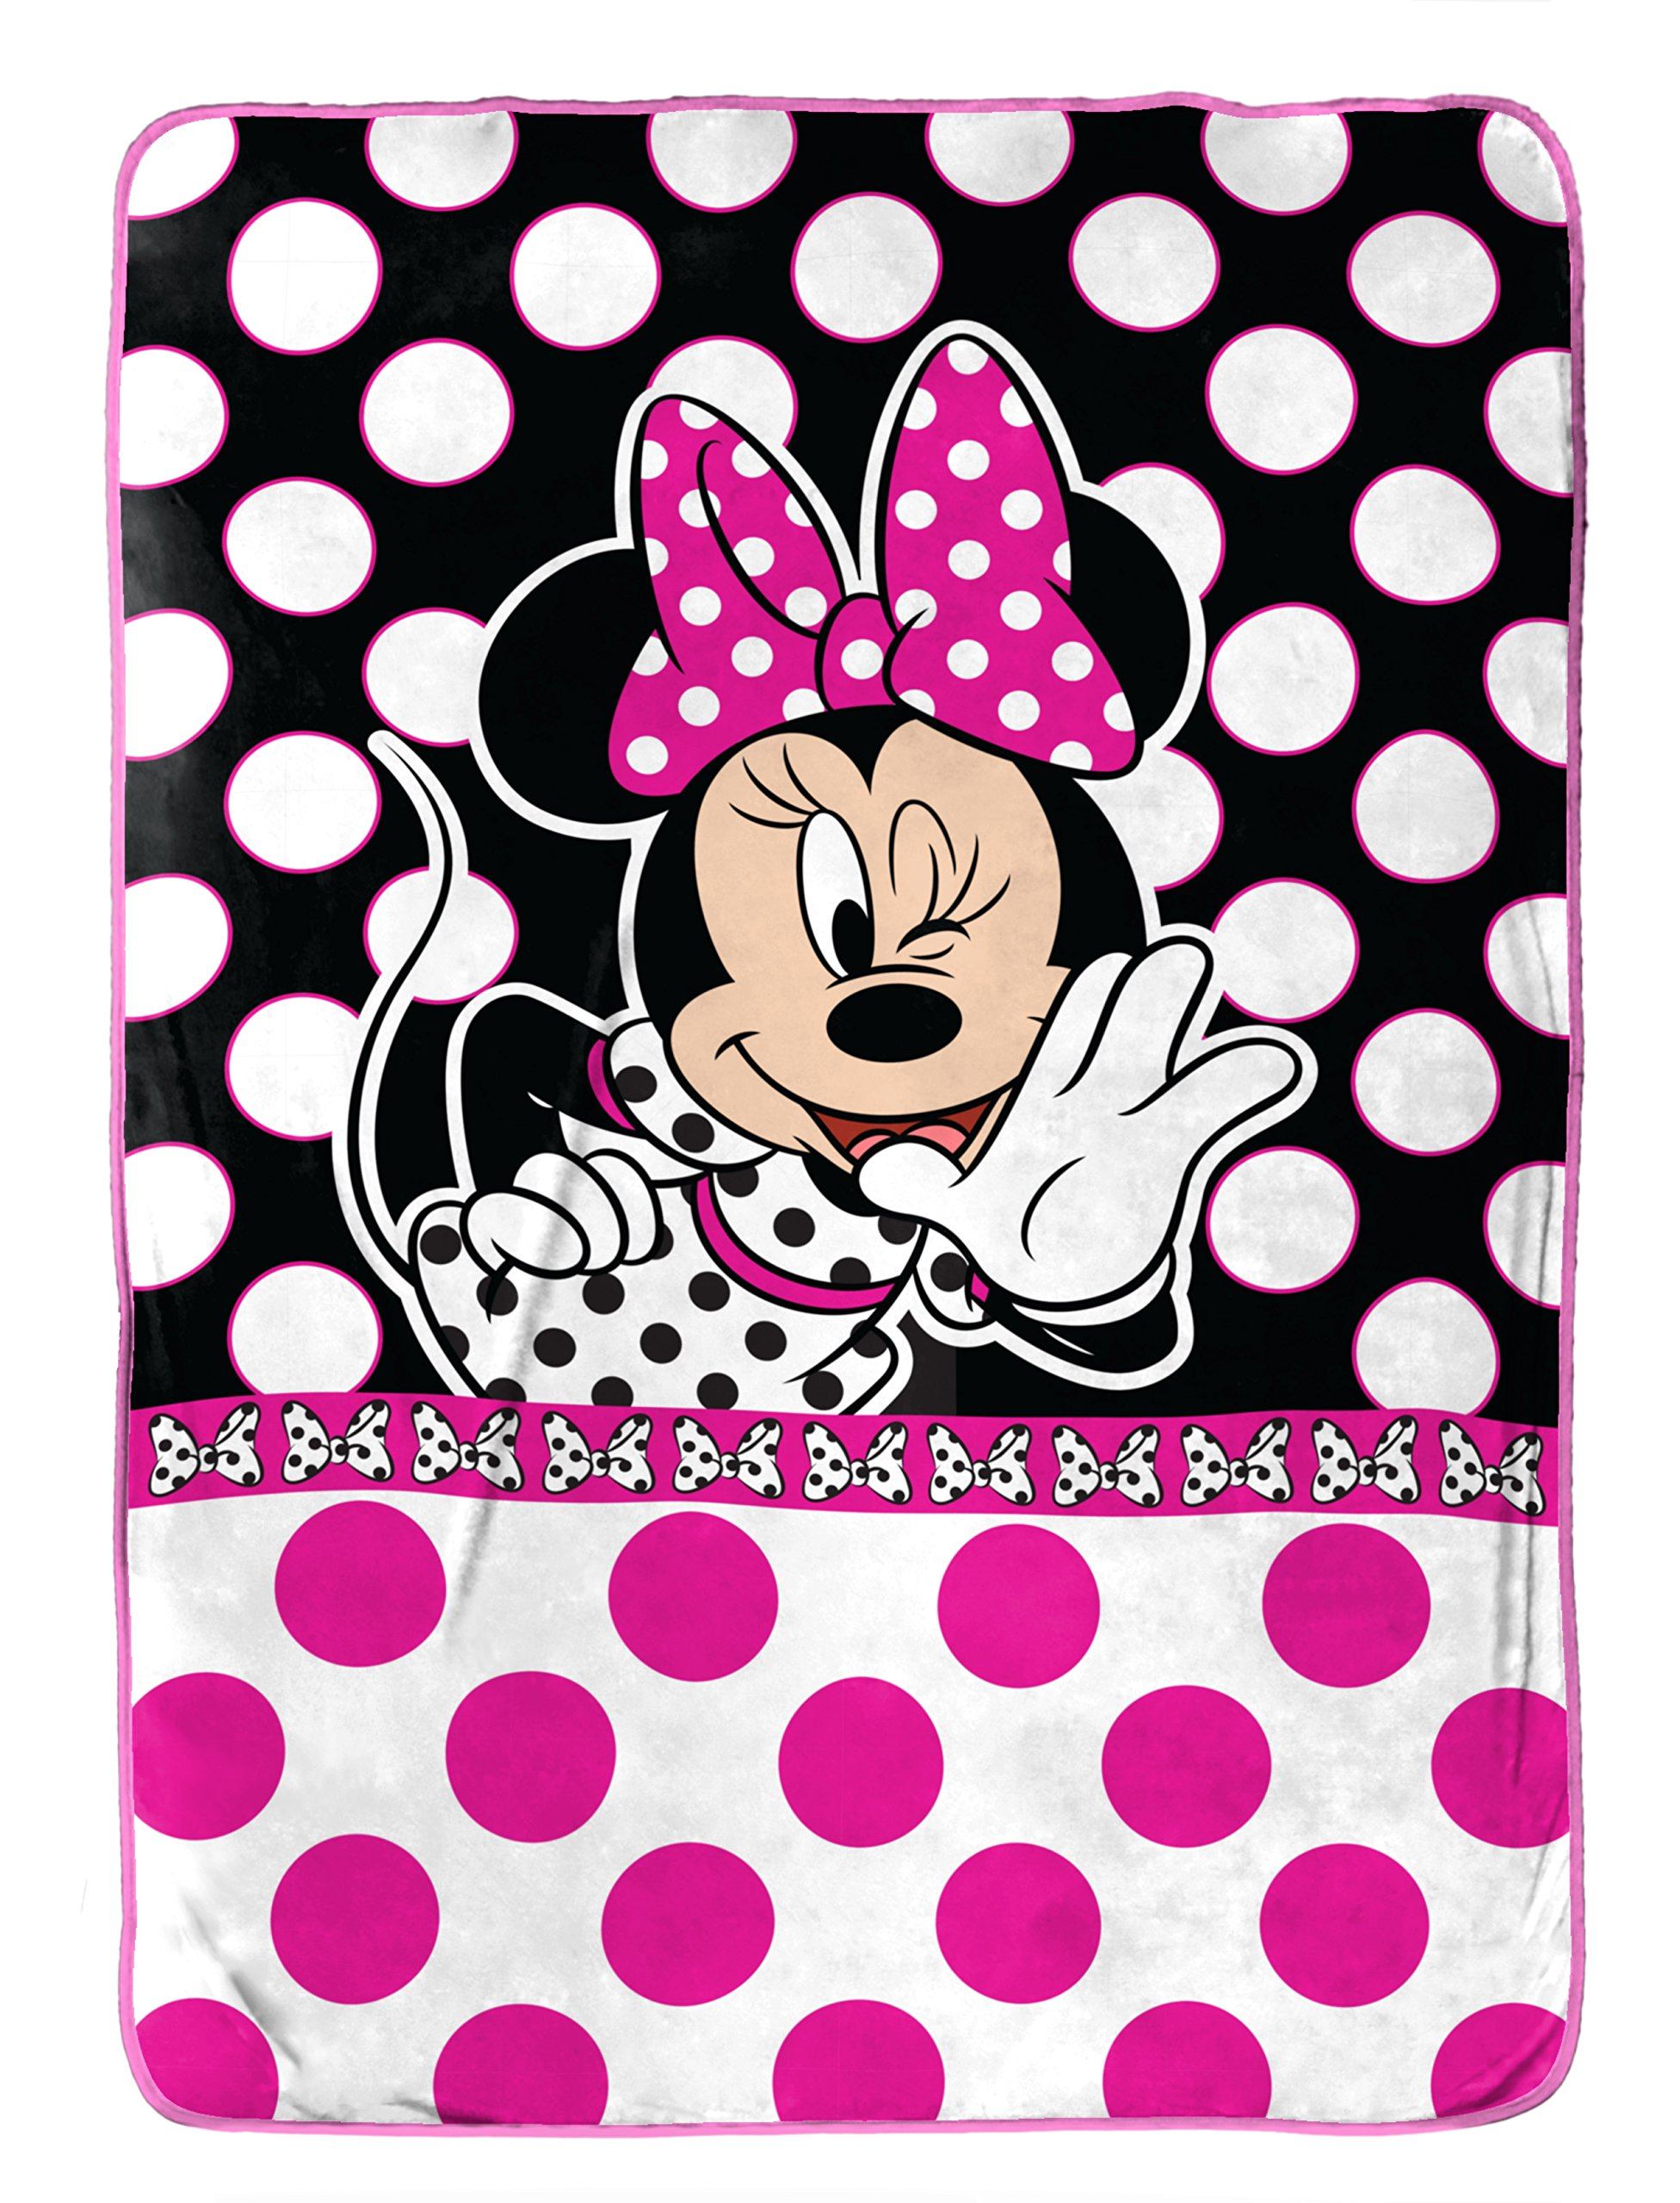 Disney Minnie Mouse All About Dots Silk Touch 62 X 90 Twin Blanket by Jay Franco